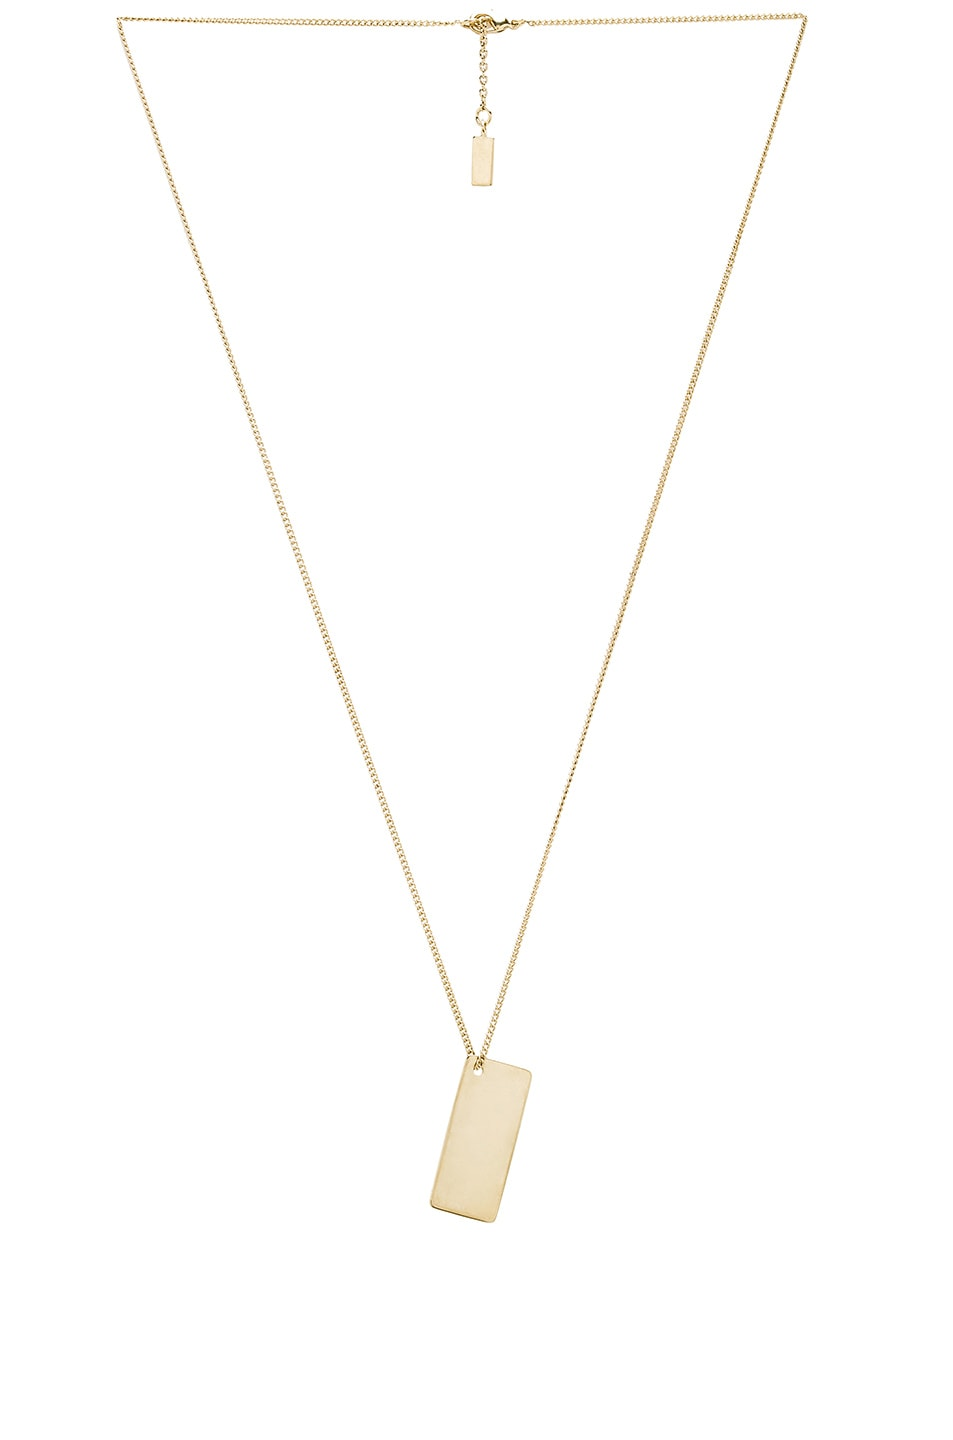 andr in necklace apc brass andre